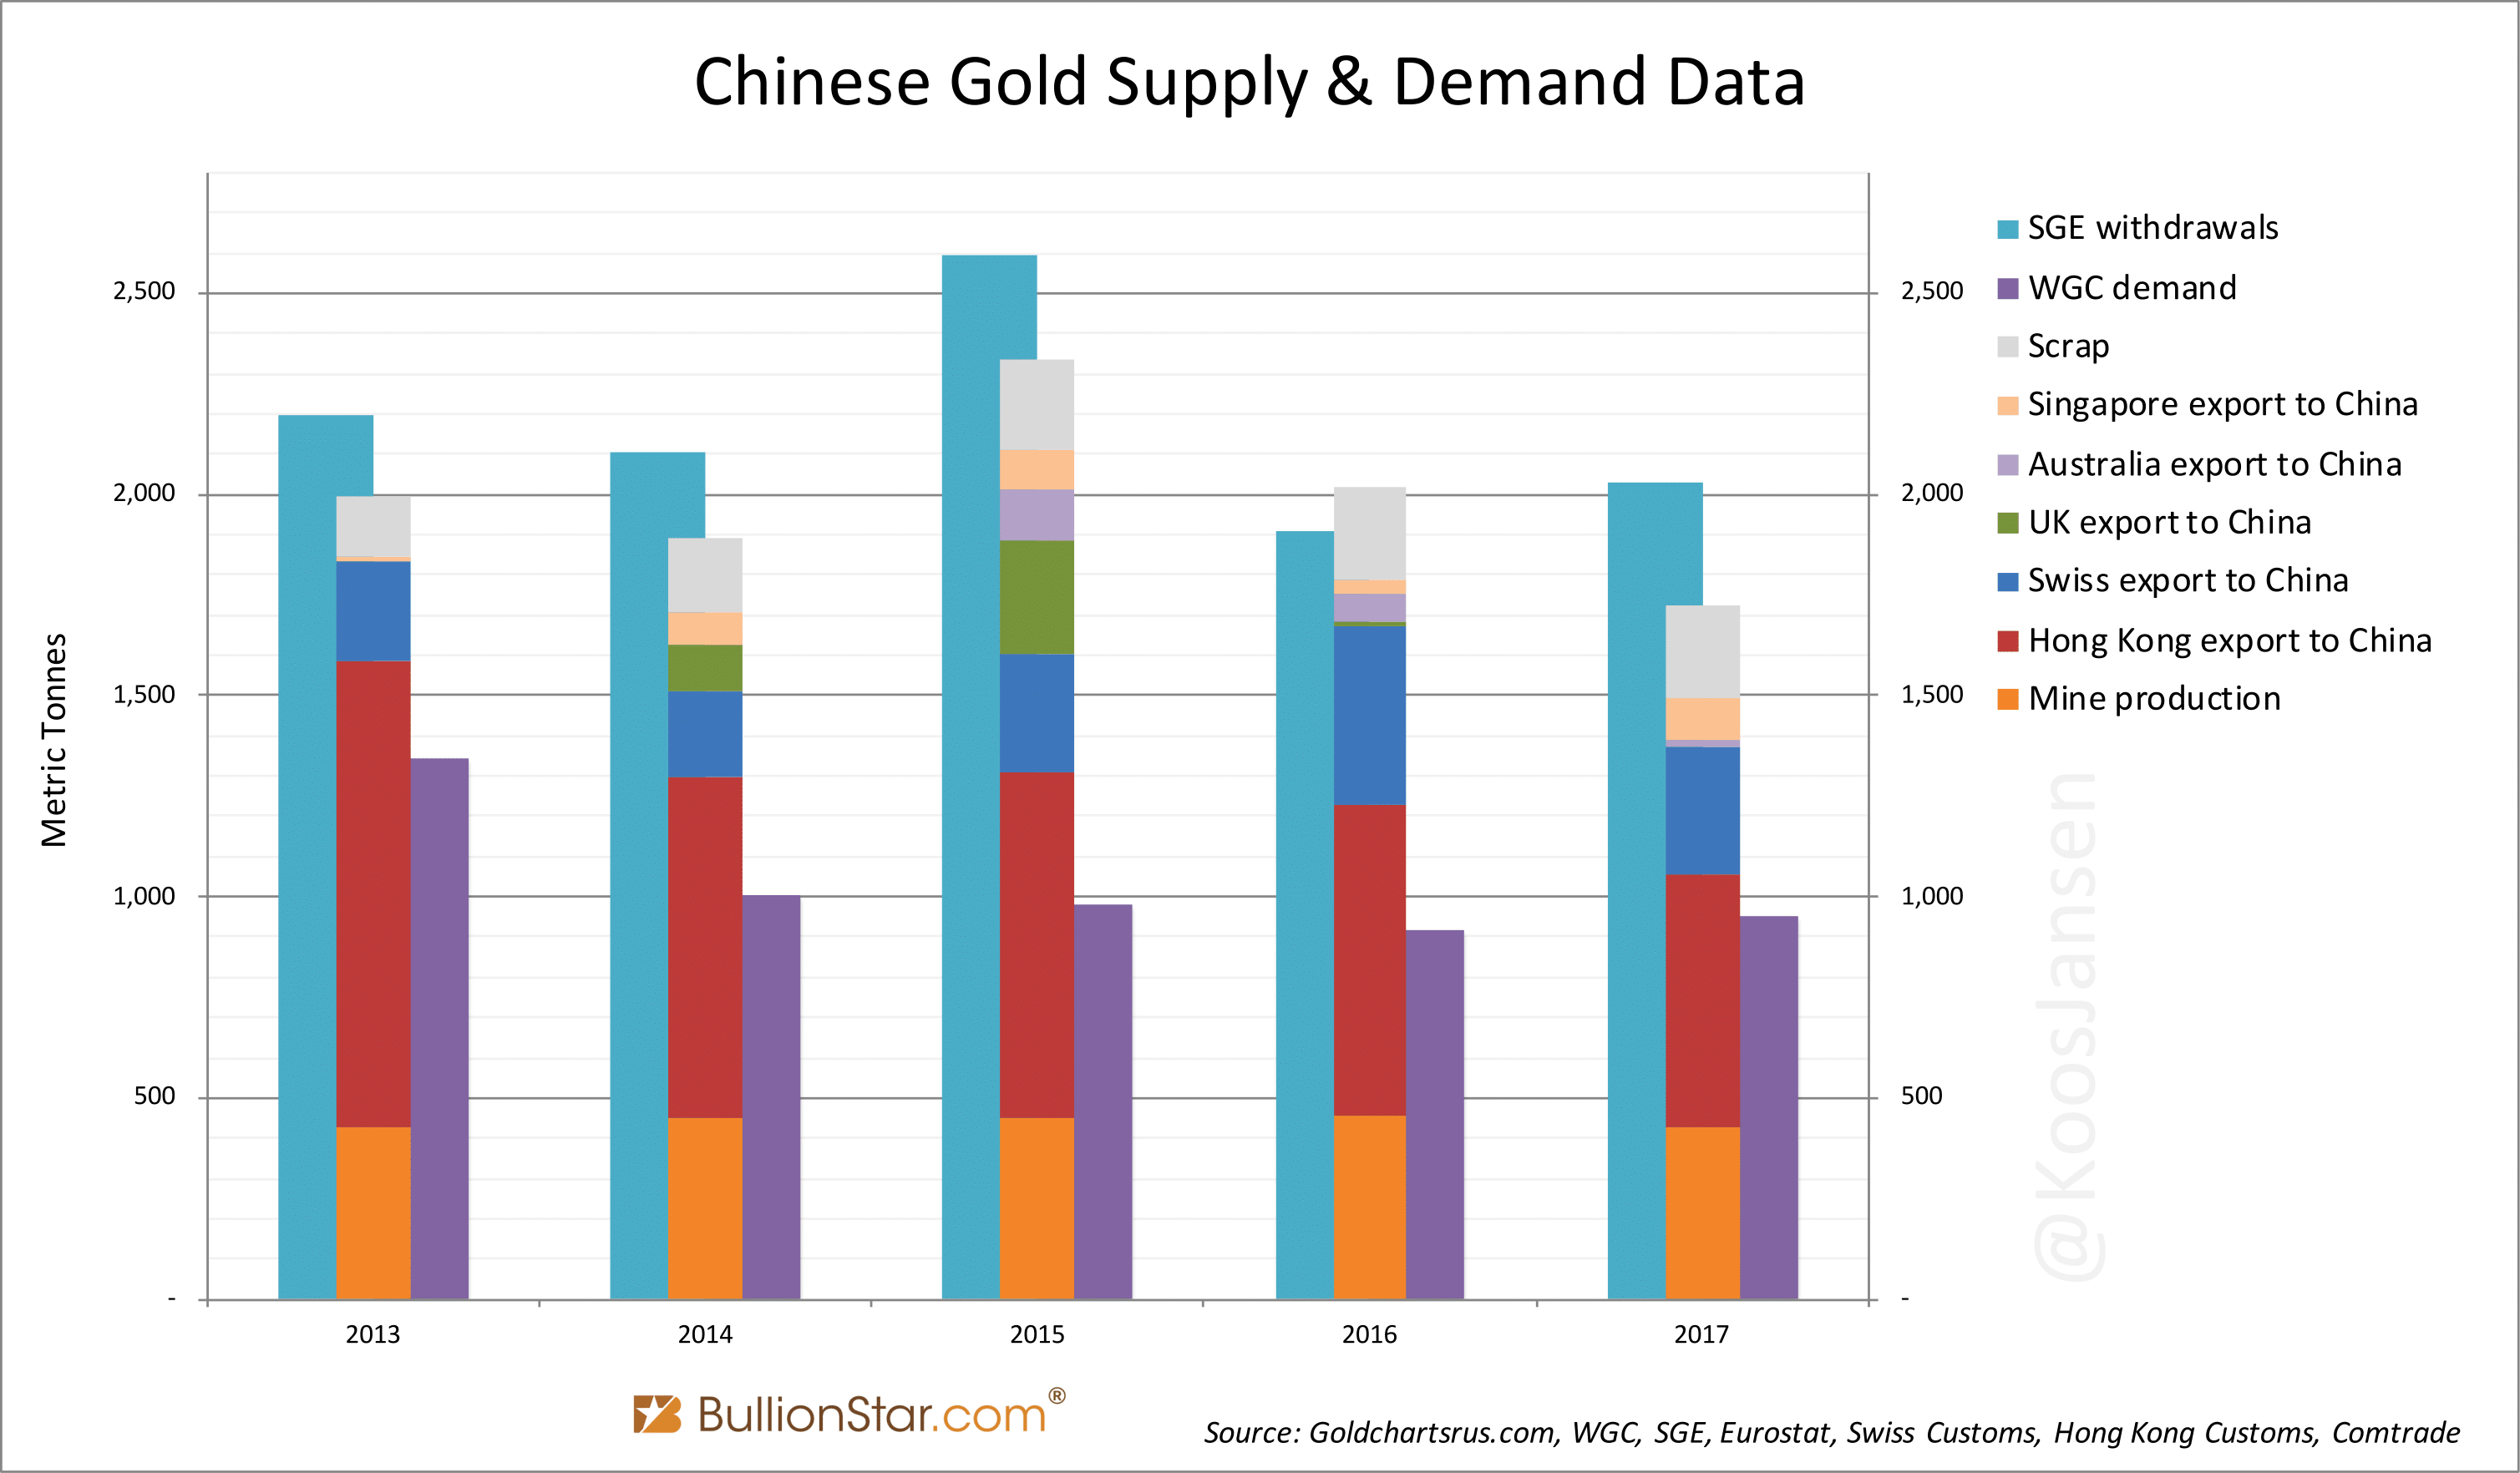 Demand for Gold Declines, Will Prices Follow?